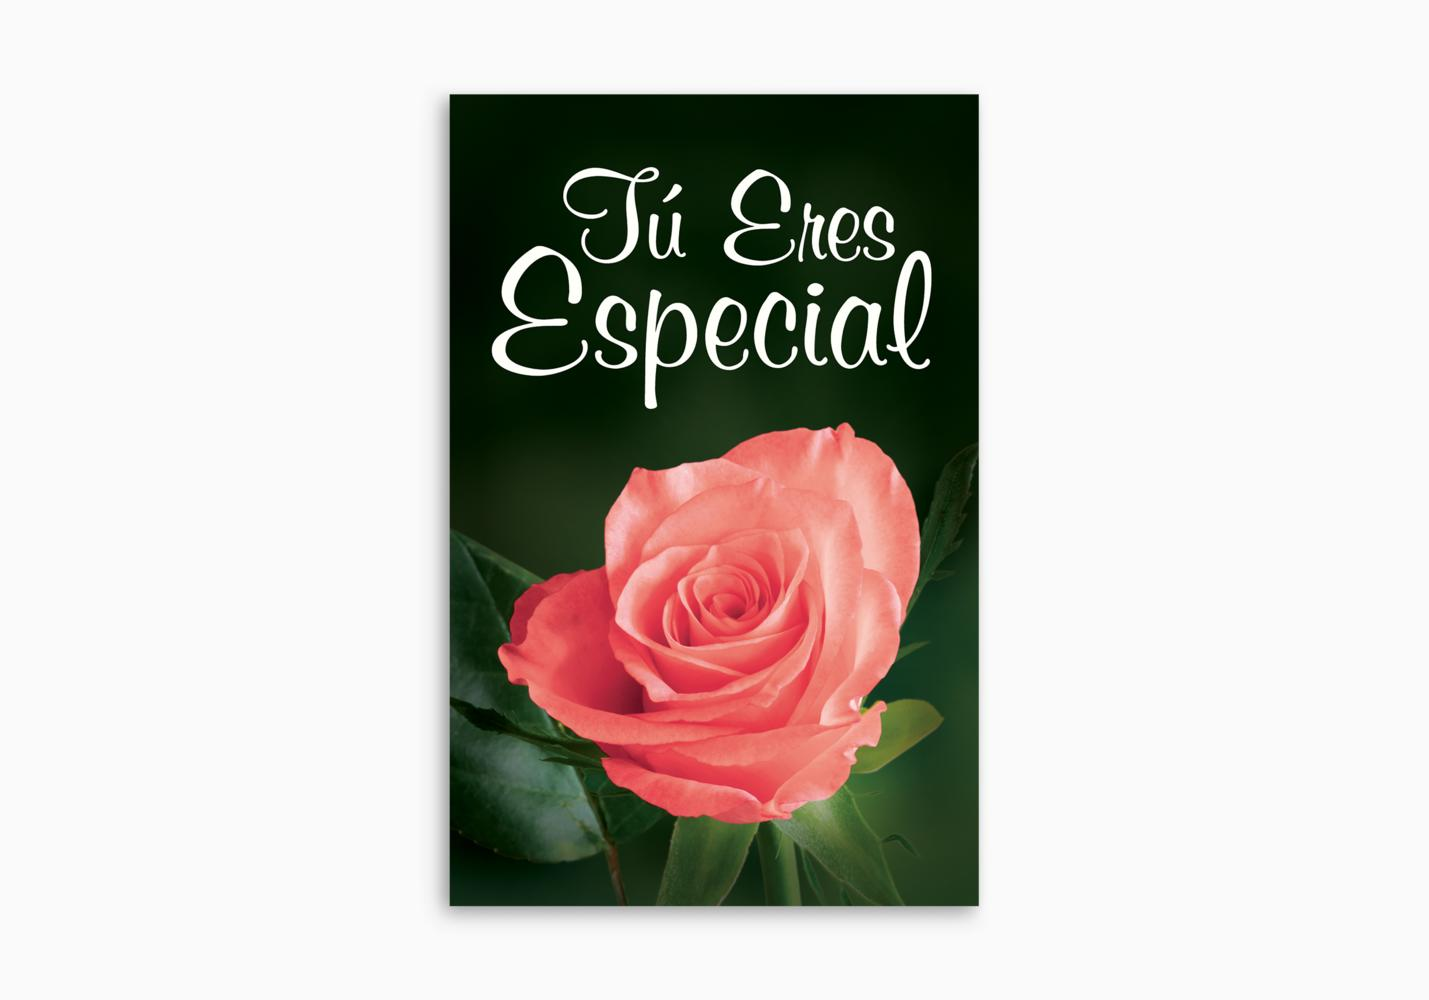 You're Special (Spanish)